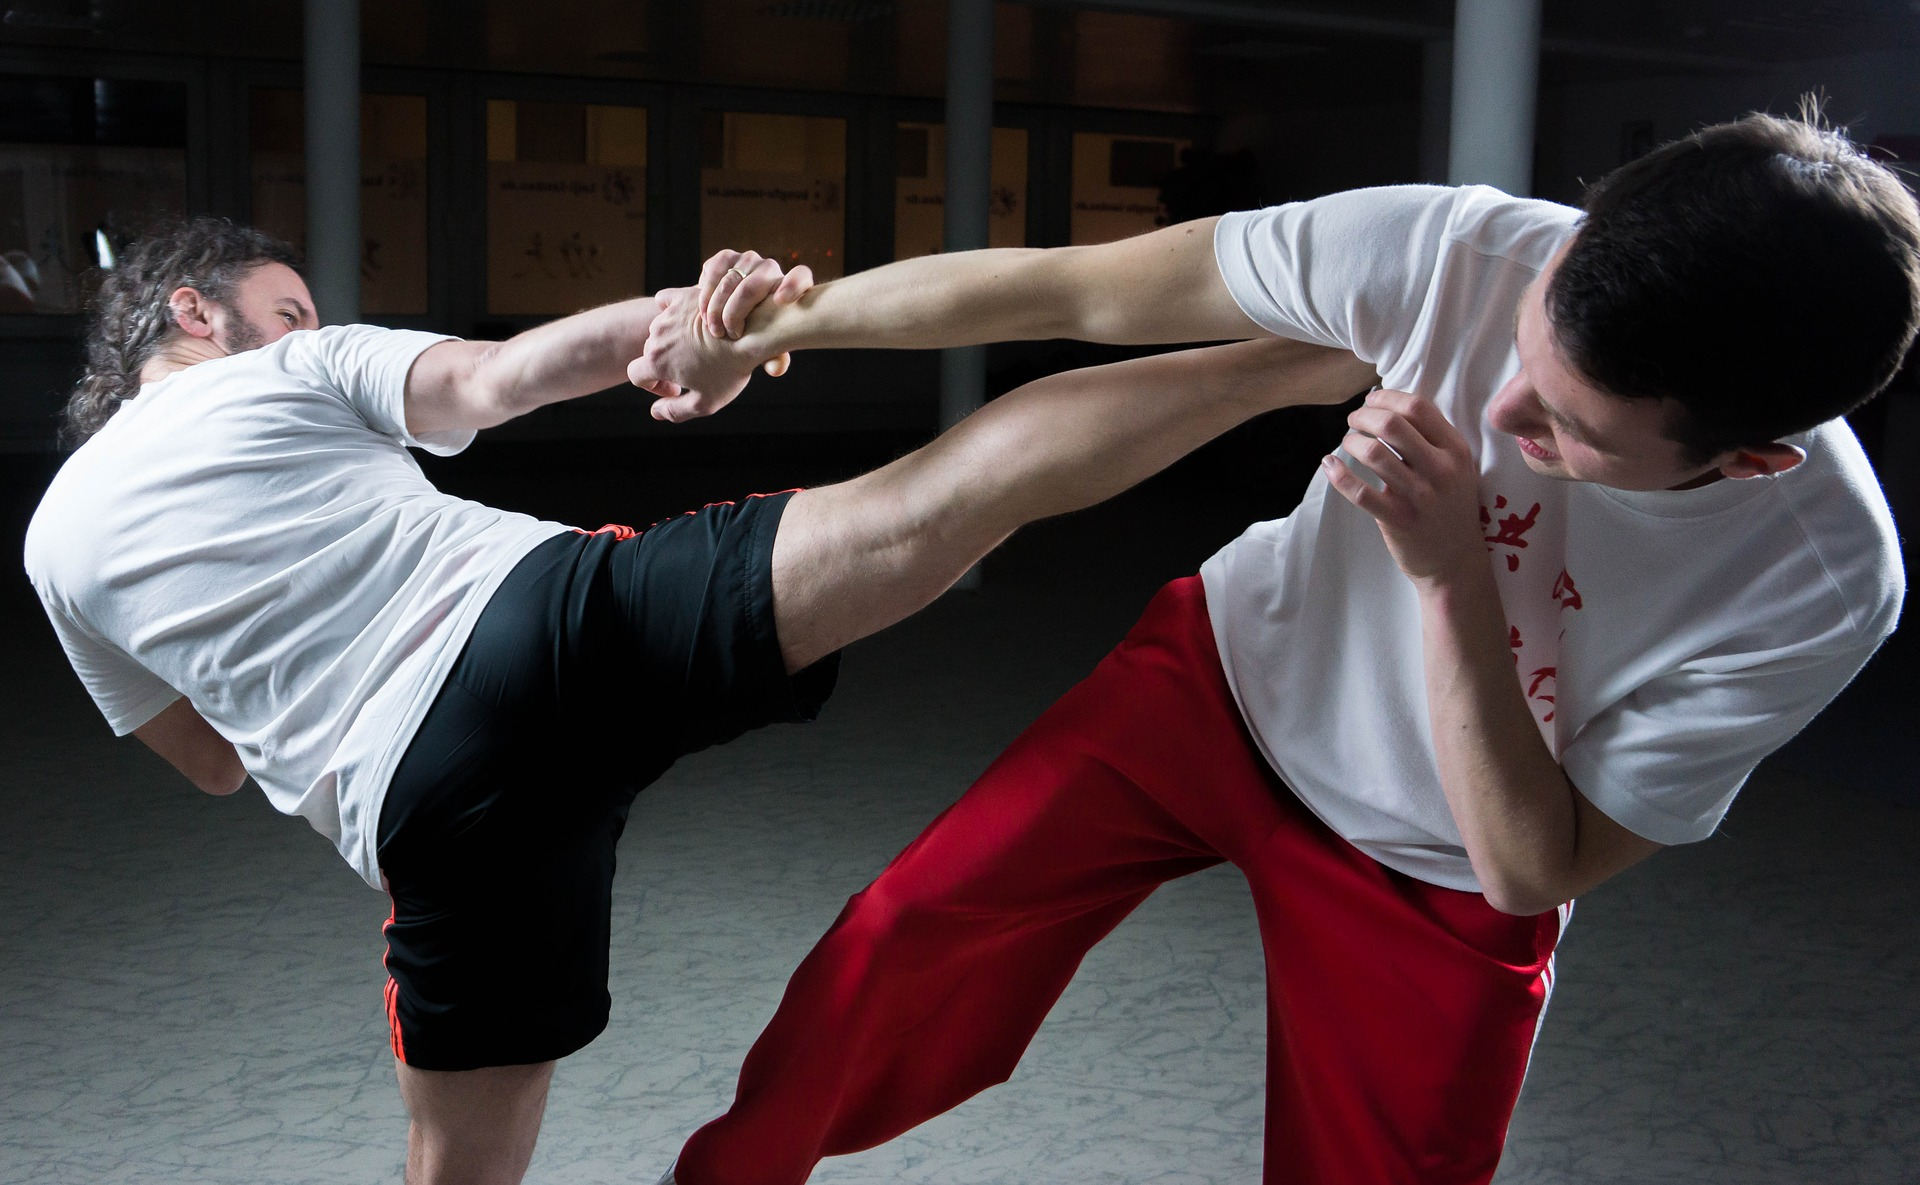 picture of two men practicing martial arts